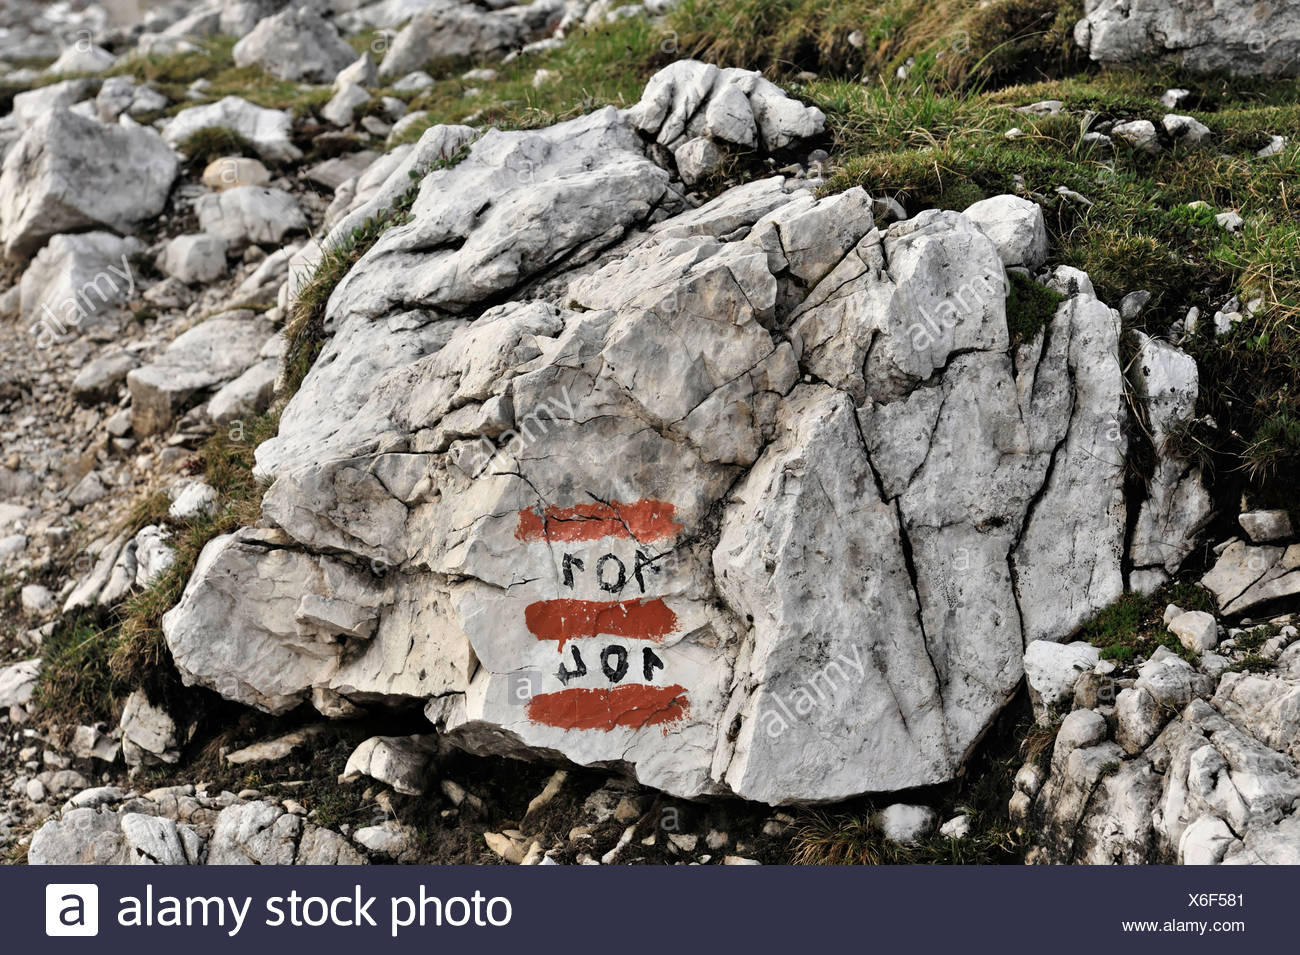 Trail markings for trails 101 and 104, Three Peaks Trail, Sesto Dolomites, Italy, Europe - Stock Image